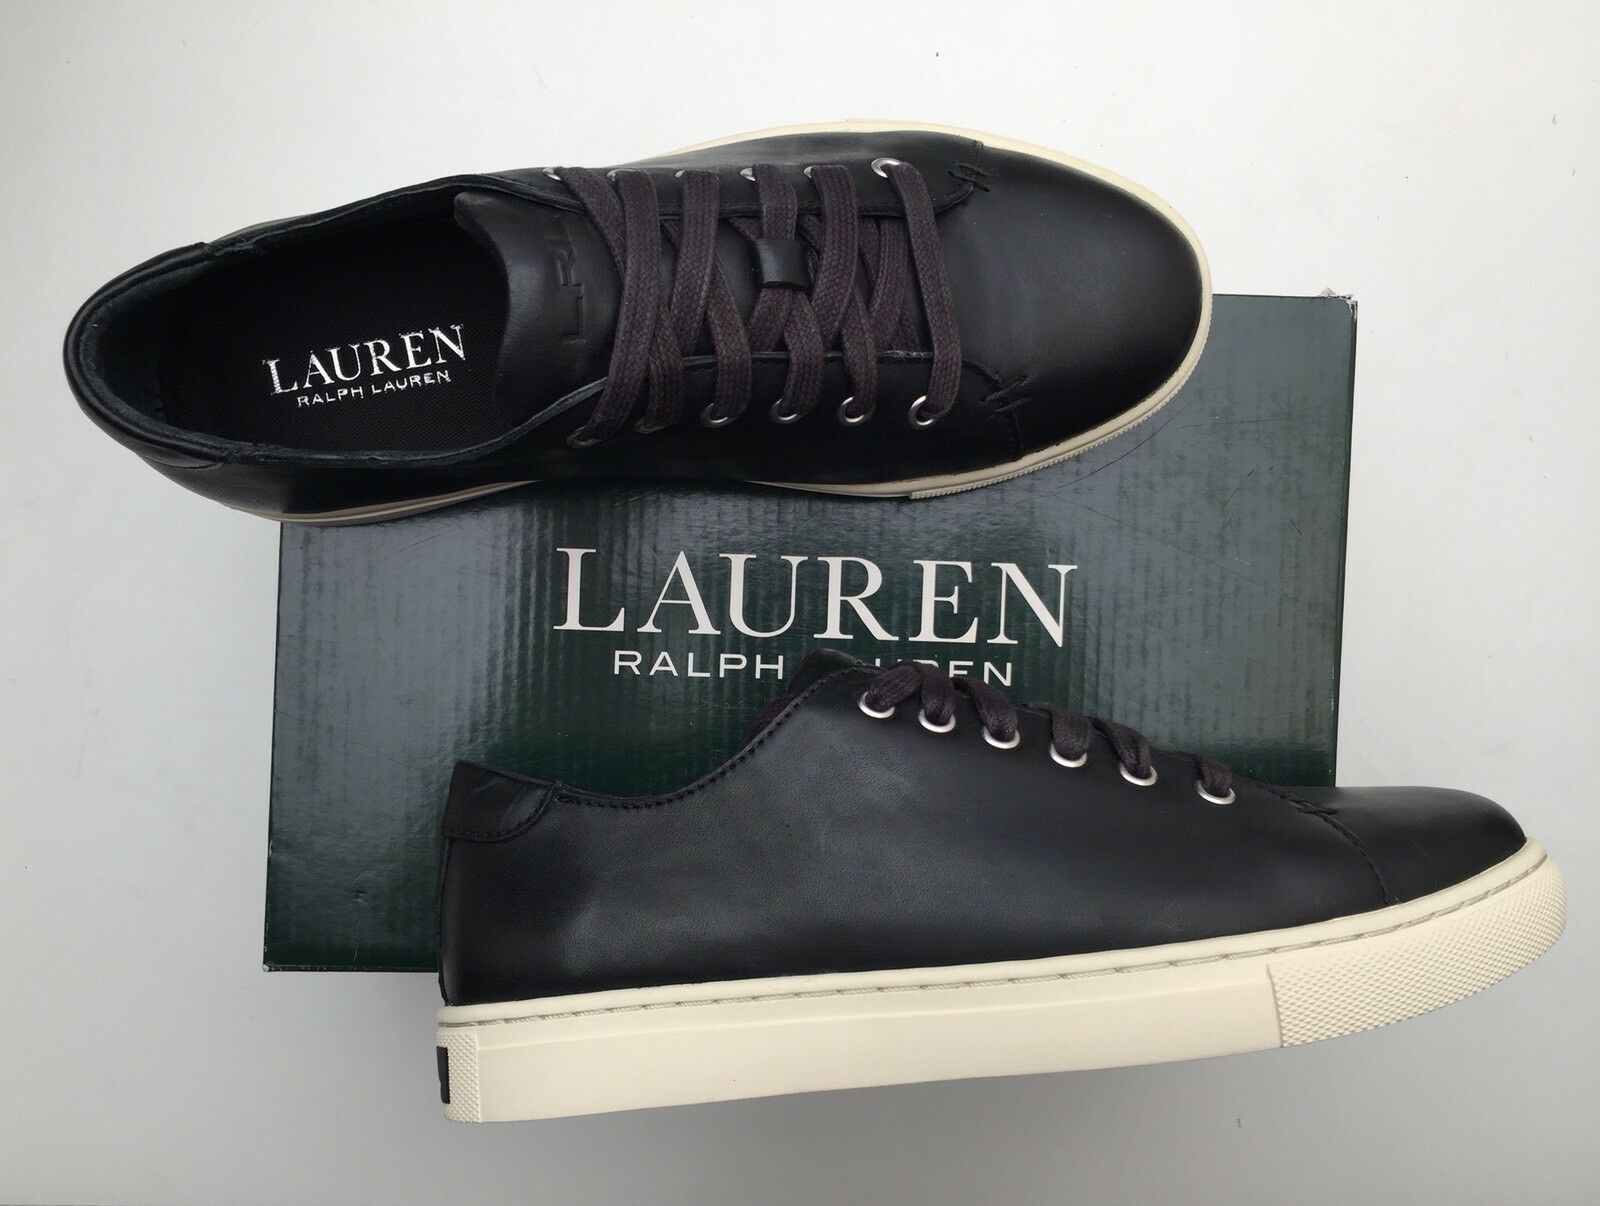 BNIB LAUREN BY RALPH LAUREN WAVERLY LEATHER TRAINERS 6.5 Guaranteed Original